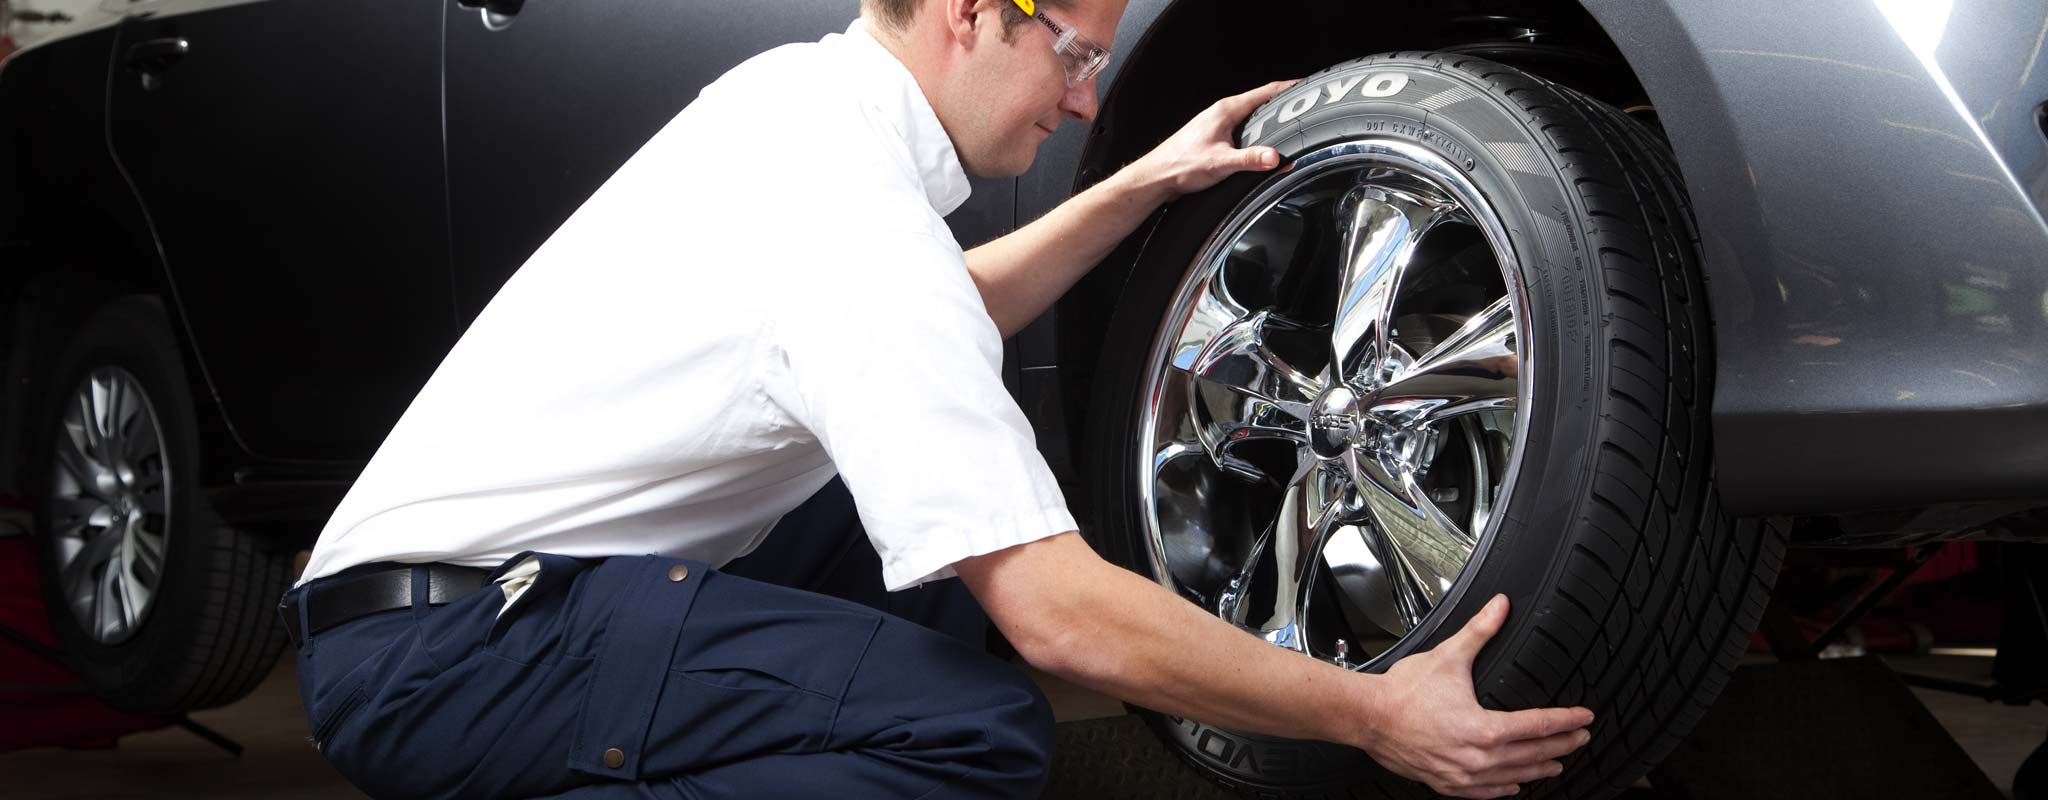 A Les Schwab technician removes a tire for a tire rotation.